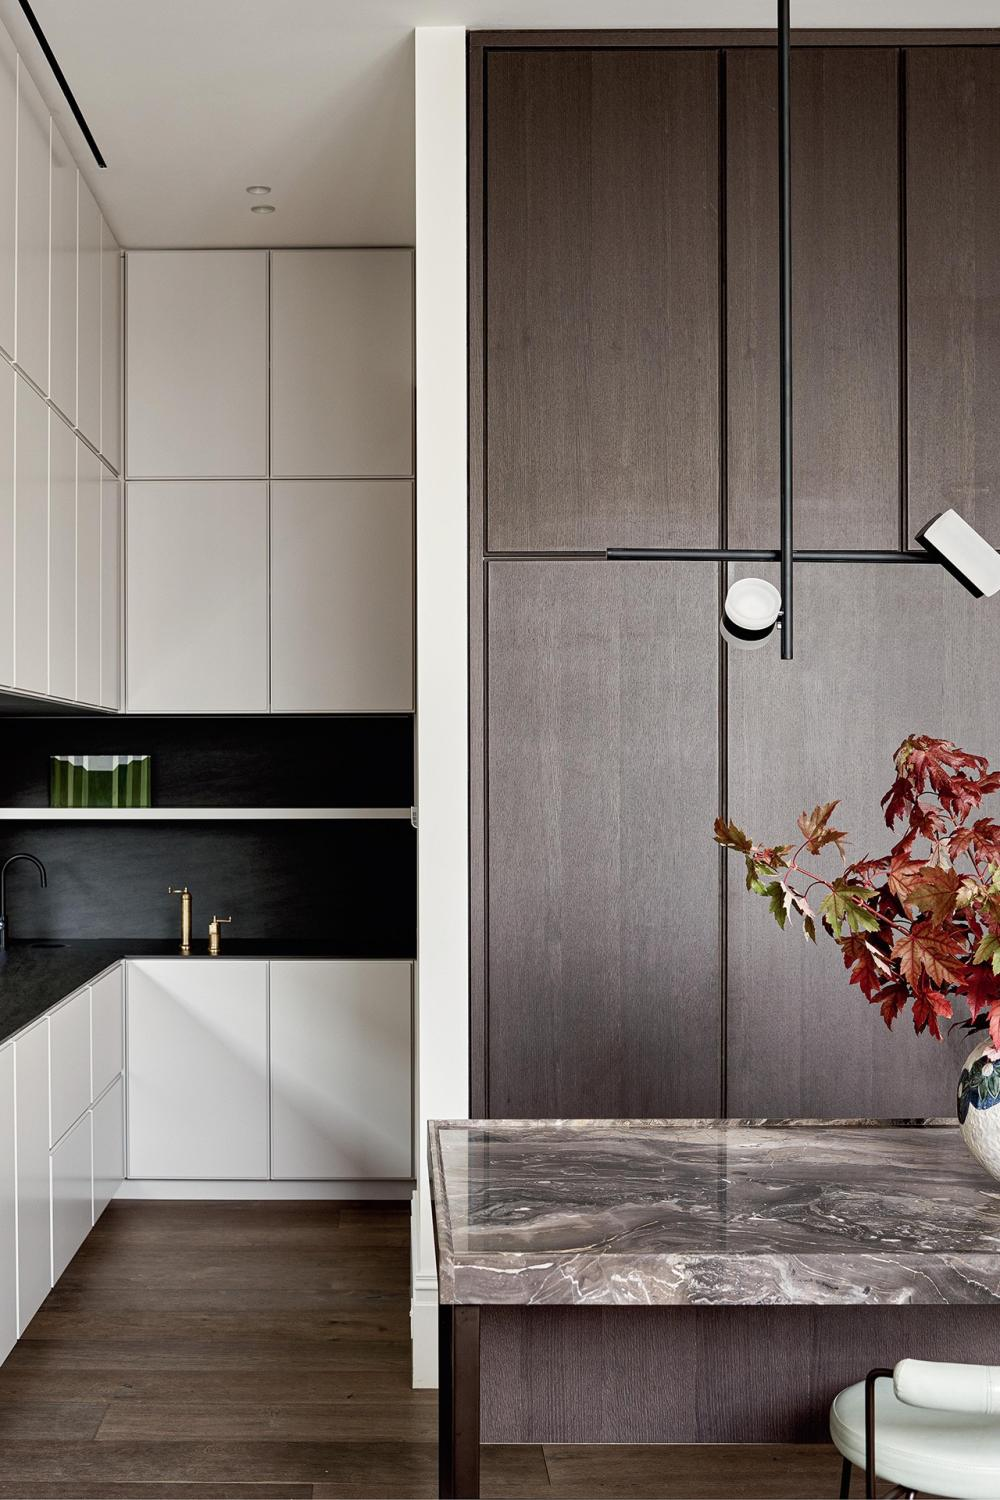 House tour: an elegant heritage Melbourne home restored with a moody colour palette-6.jpg